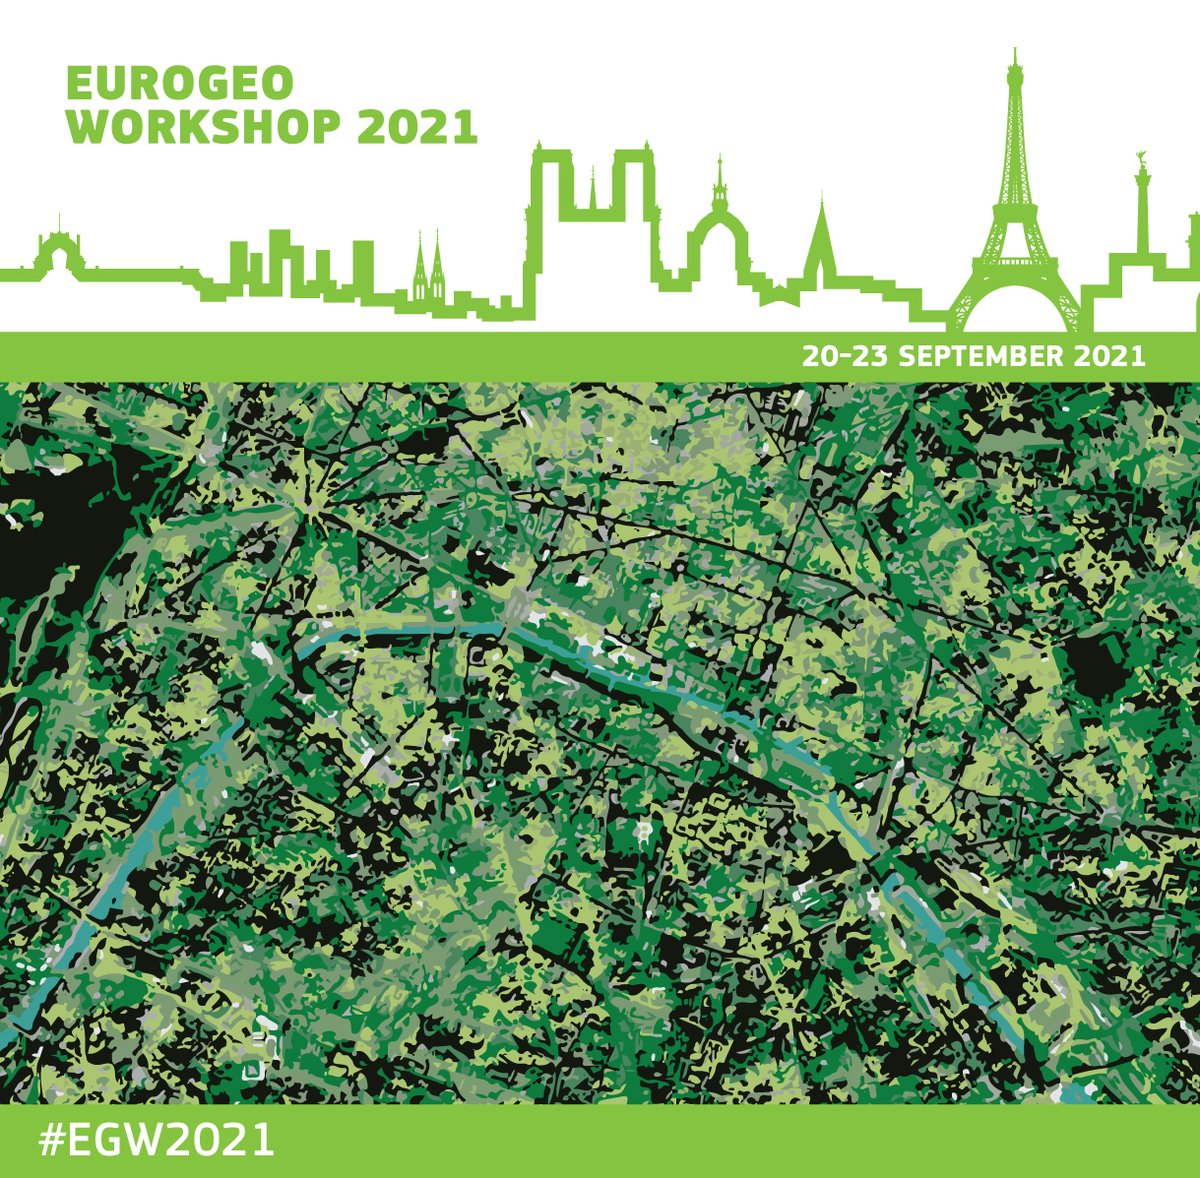 SAFERS is participating at the #EuroGEO workshop 2021 which is bringing European players interested in & actively contributing to the Global Earth Observations System of Systems (#GEOSS).  #EGW2021 #EO #ForestFires #AI #H2020 #GreanDeal  More information👉safers-project.eu/index.php/diss…